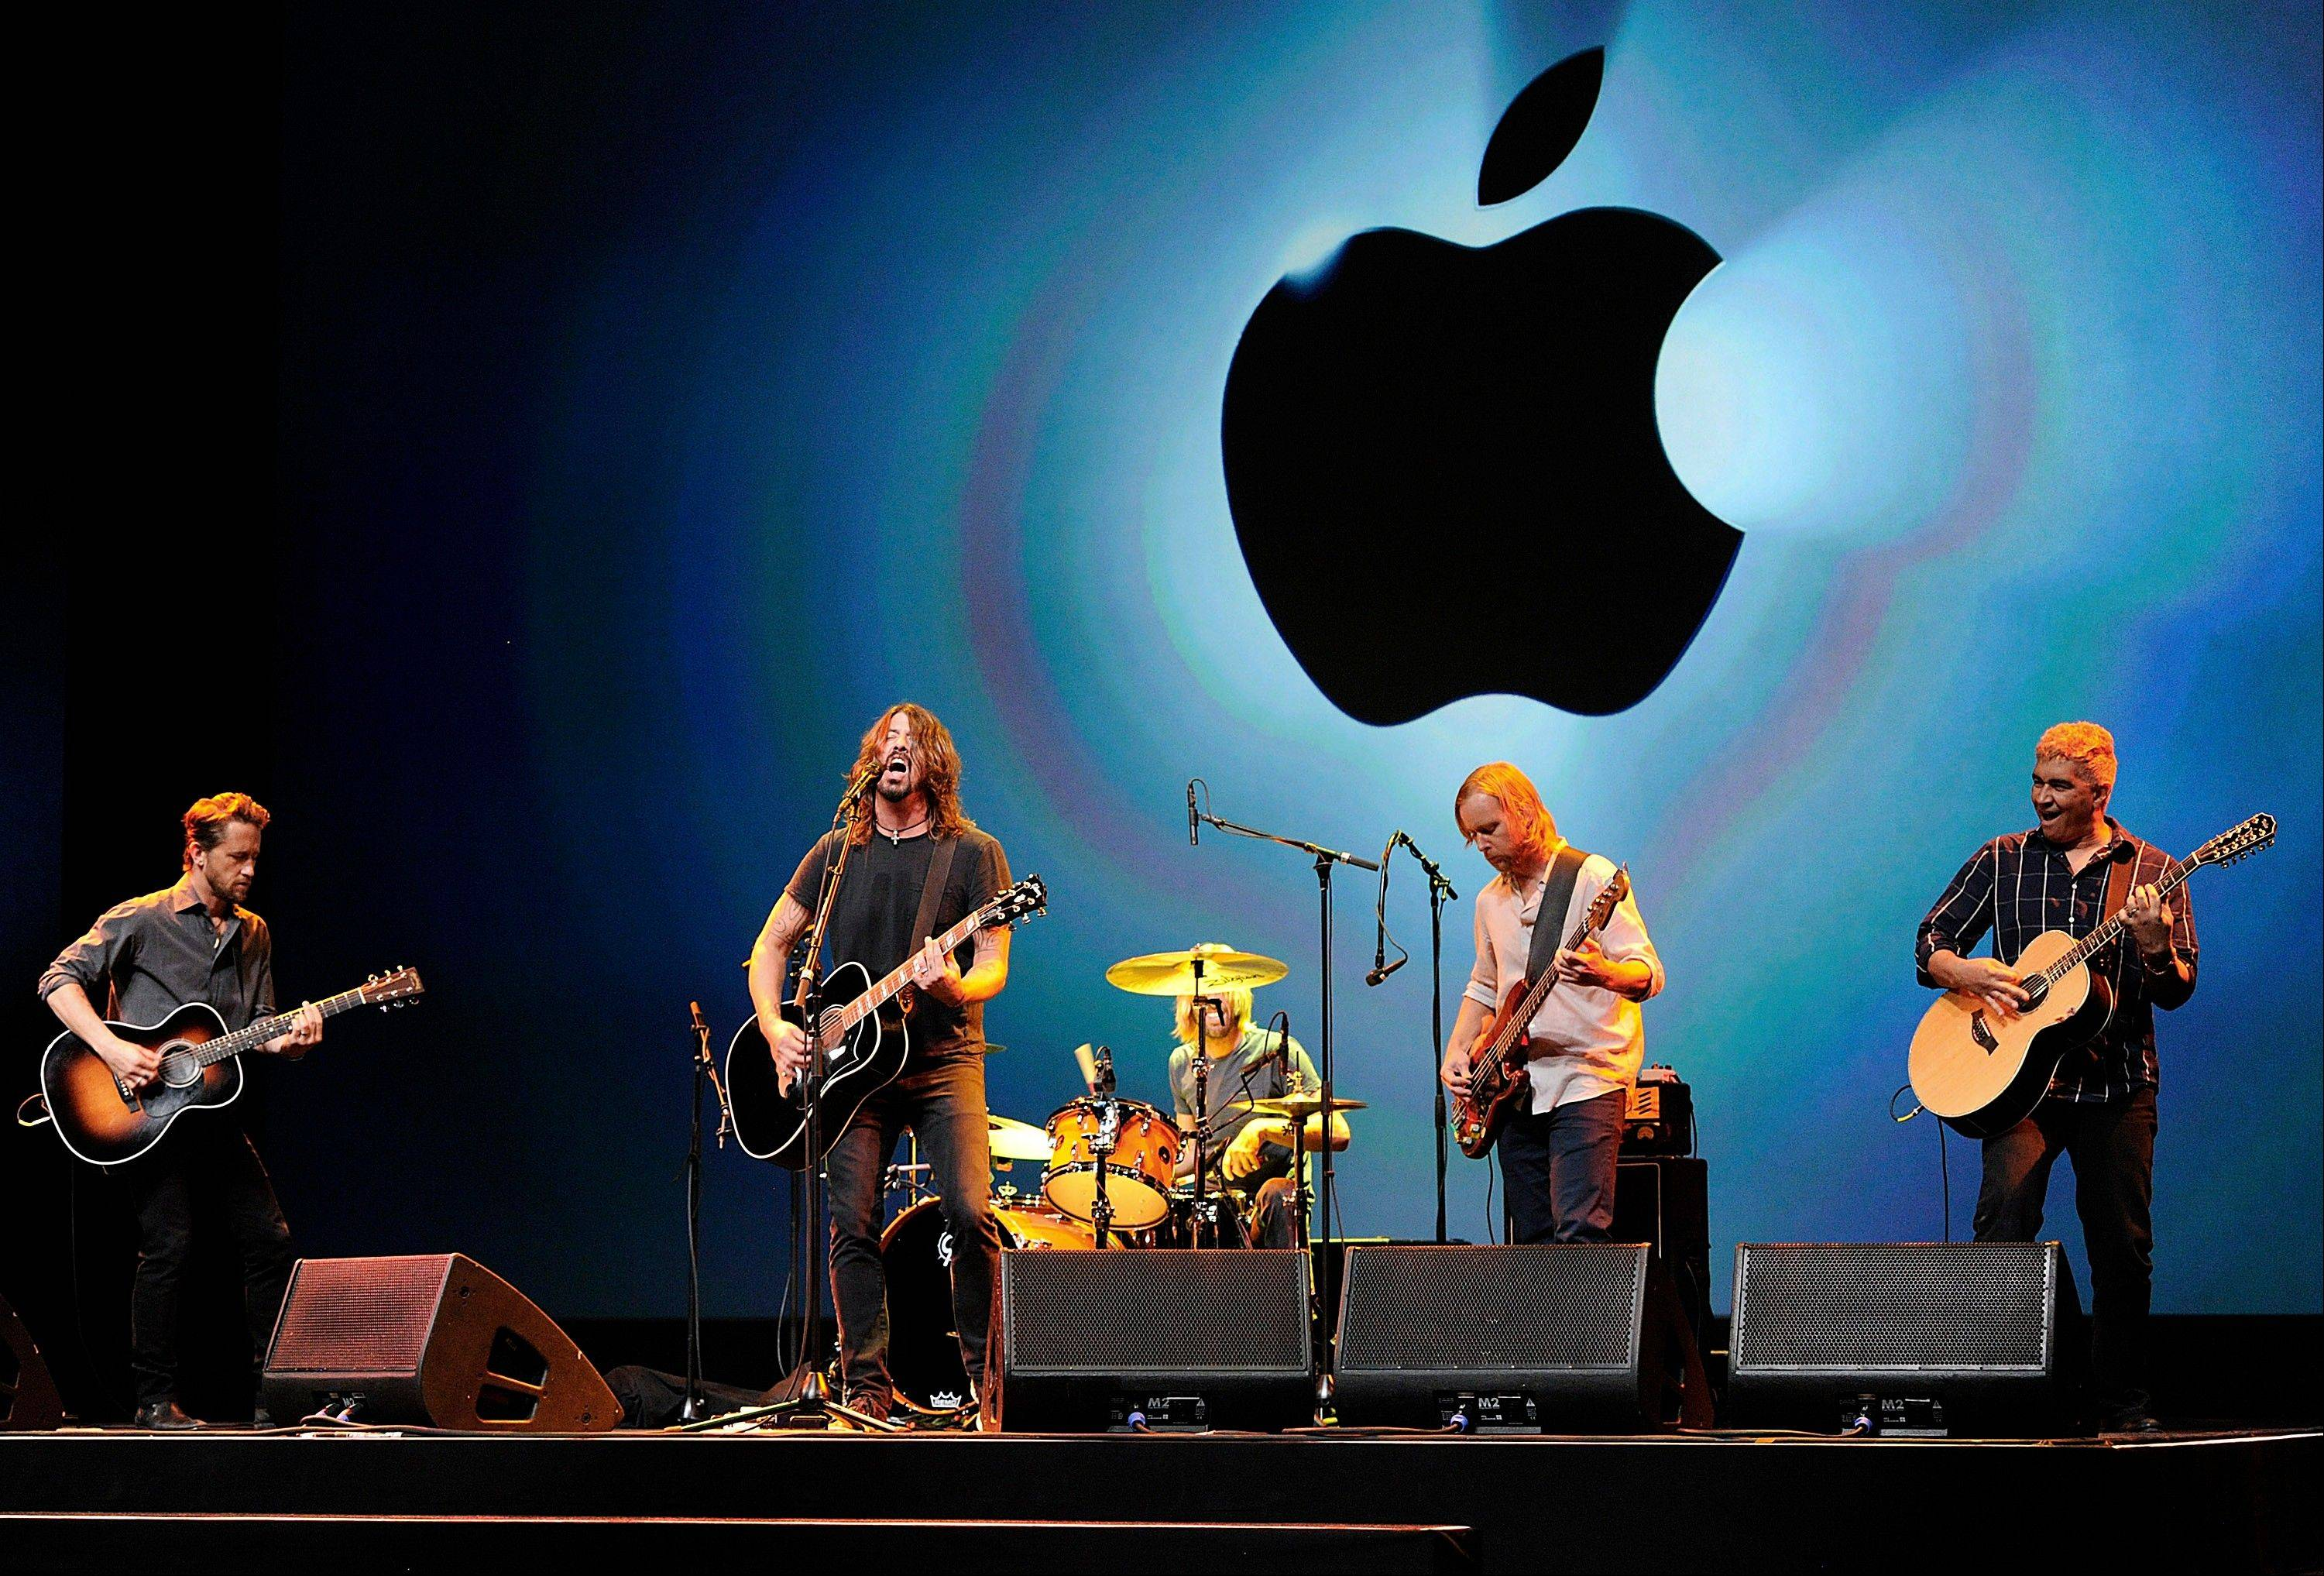 The Foo Fighters perform during an Apple Inc. event in San Francisco, California, U.S., on Wednesday, Sept. 12, 2012.